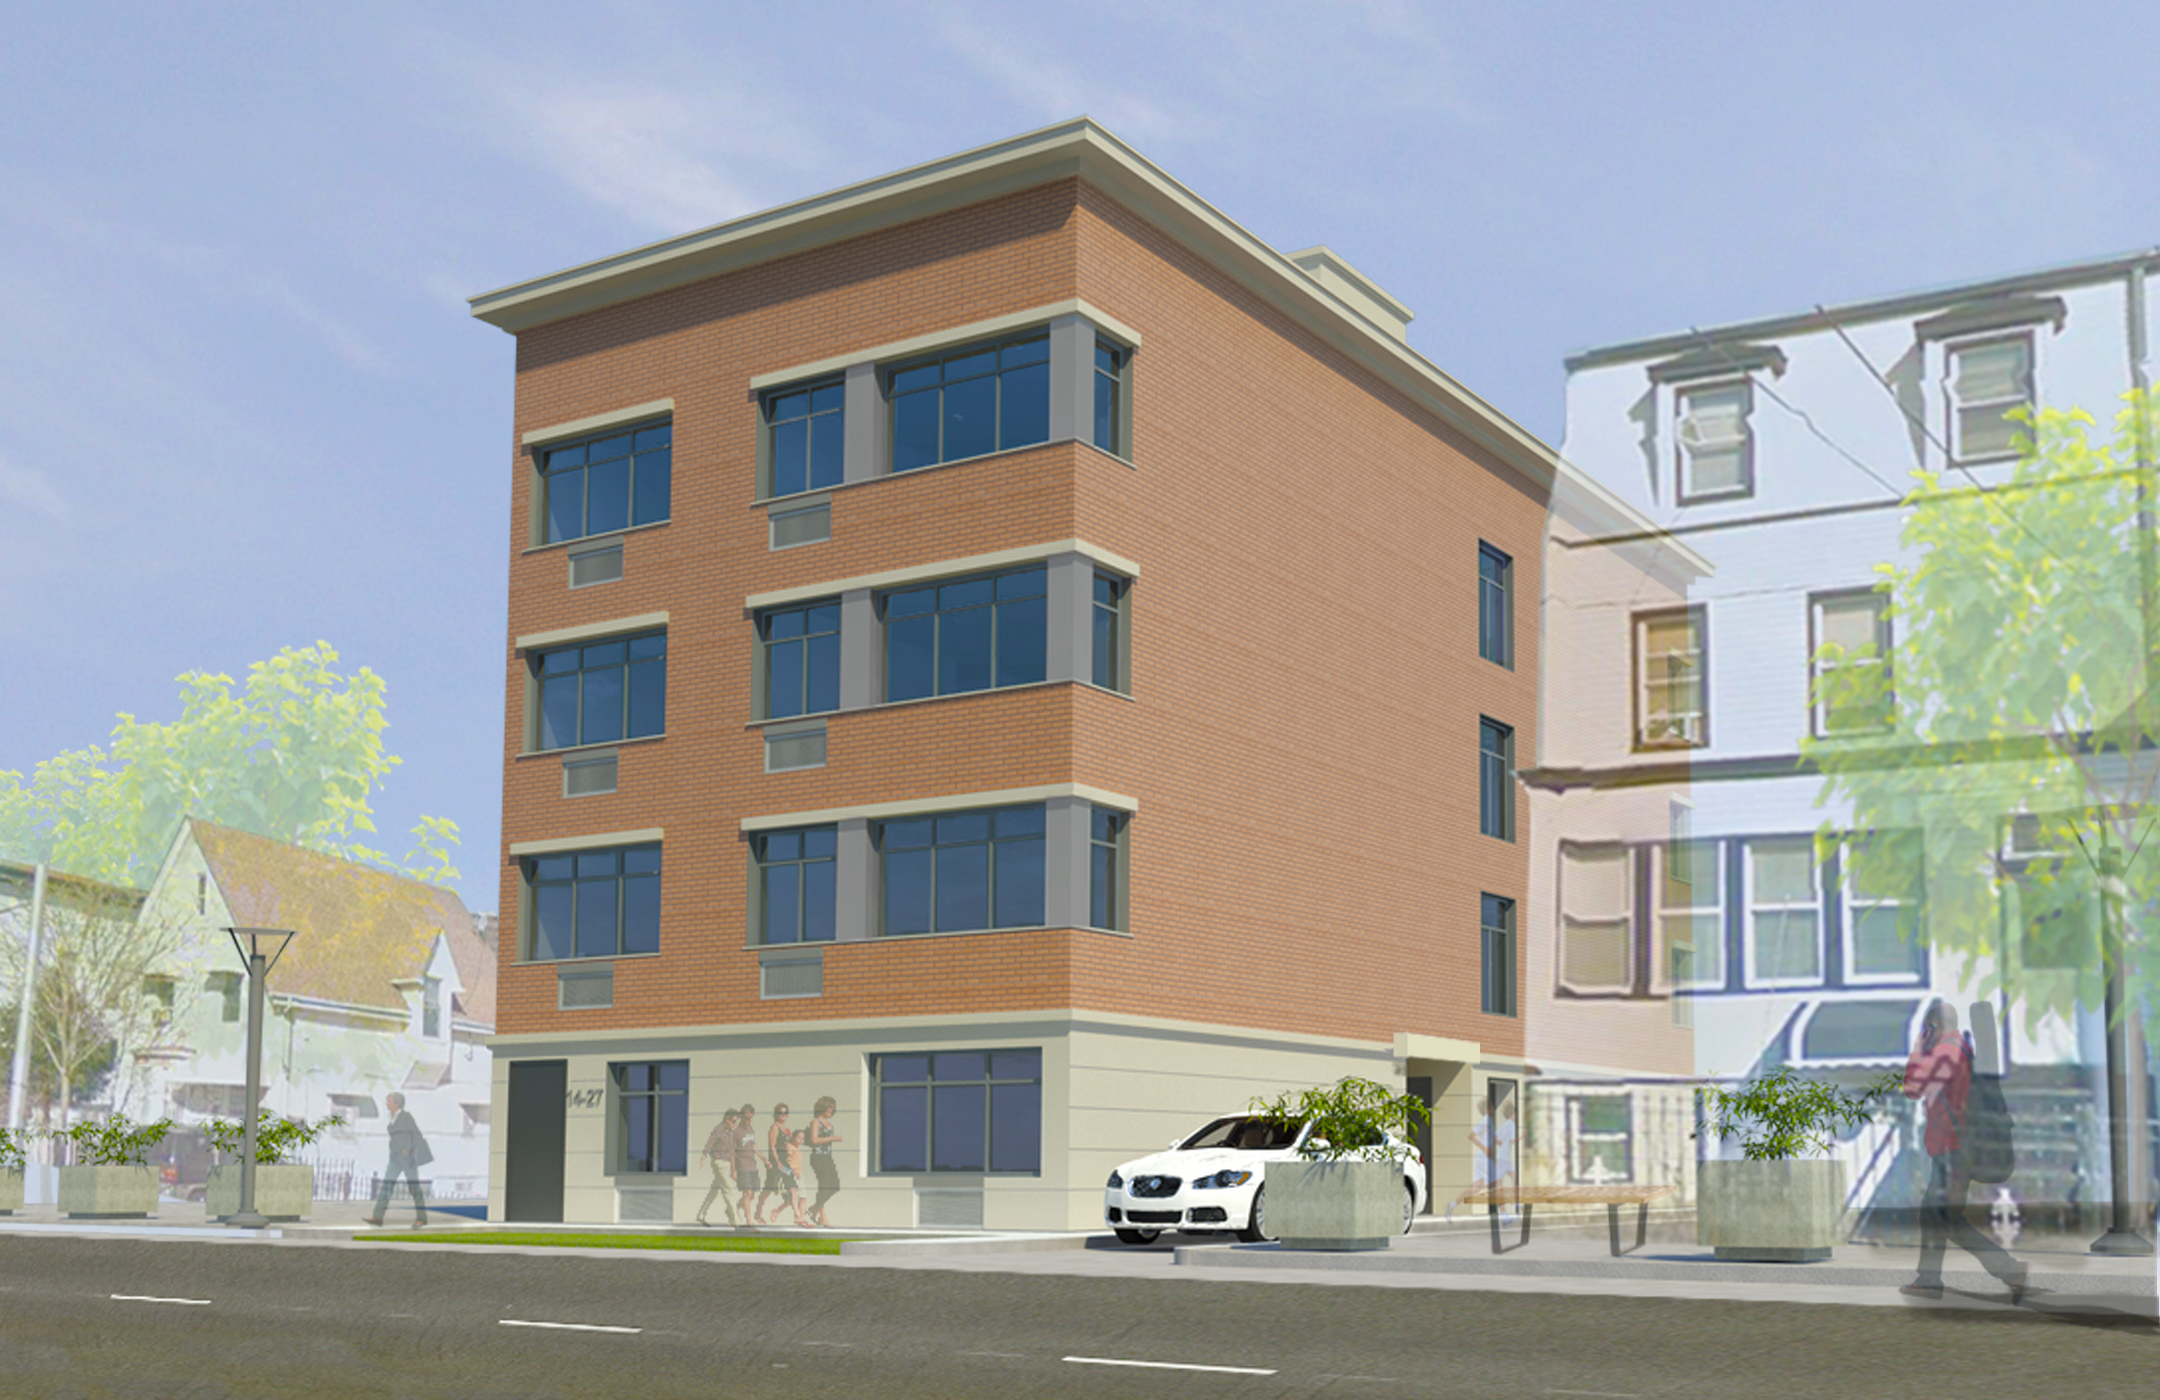 14-27 27th Ave / QNS - Ground up construction totaling 9,000sf and comprising of 8 units in Astoria, Queens.